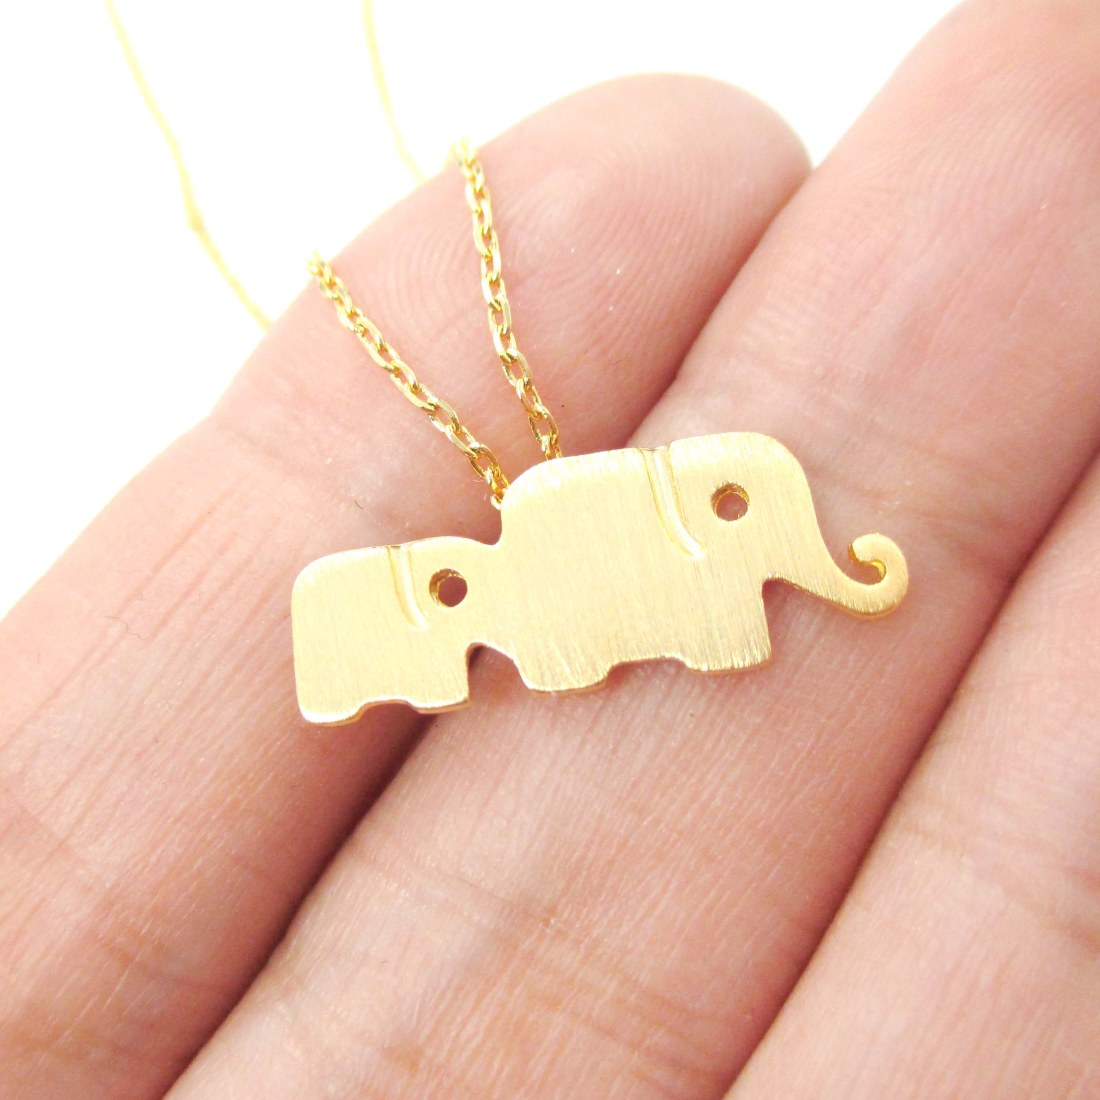 Classic elephant mother and baby family pendant necklace in gold classic elephant mother and baby family pendant necklace in gold mozeypictures Image collections